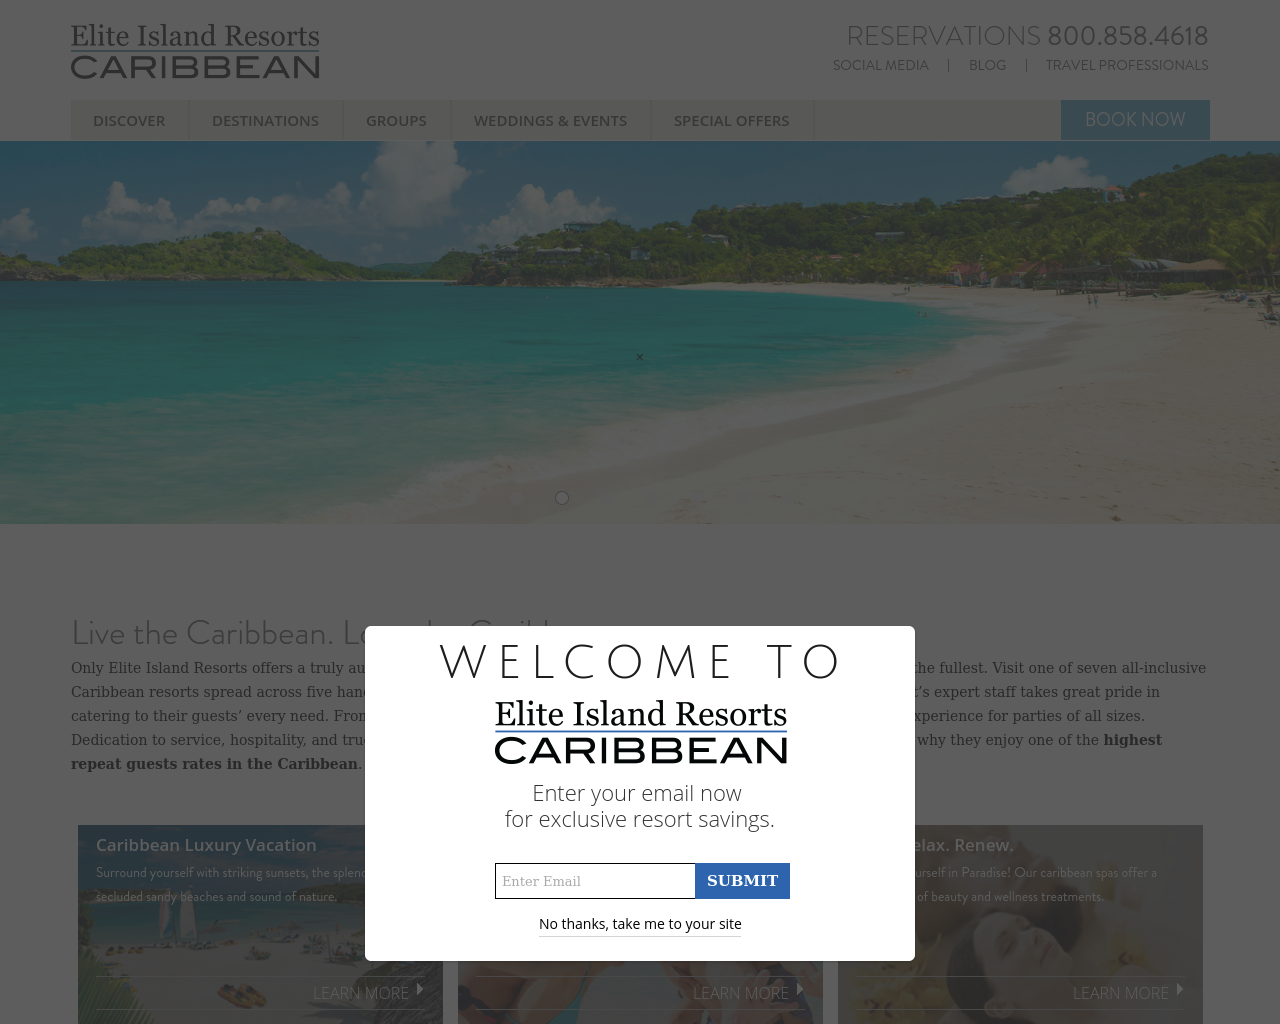 Elite-Island-Resorts-Caribbean-Advertising-Reviews-Pricing